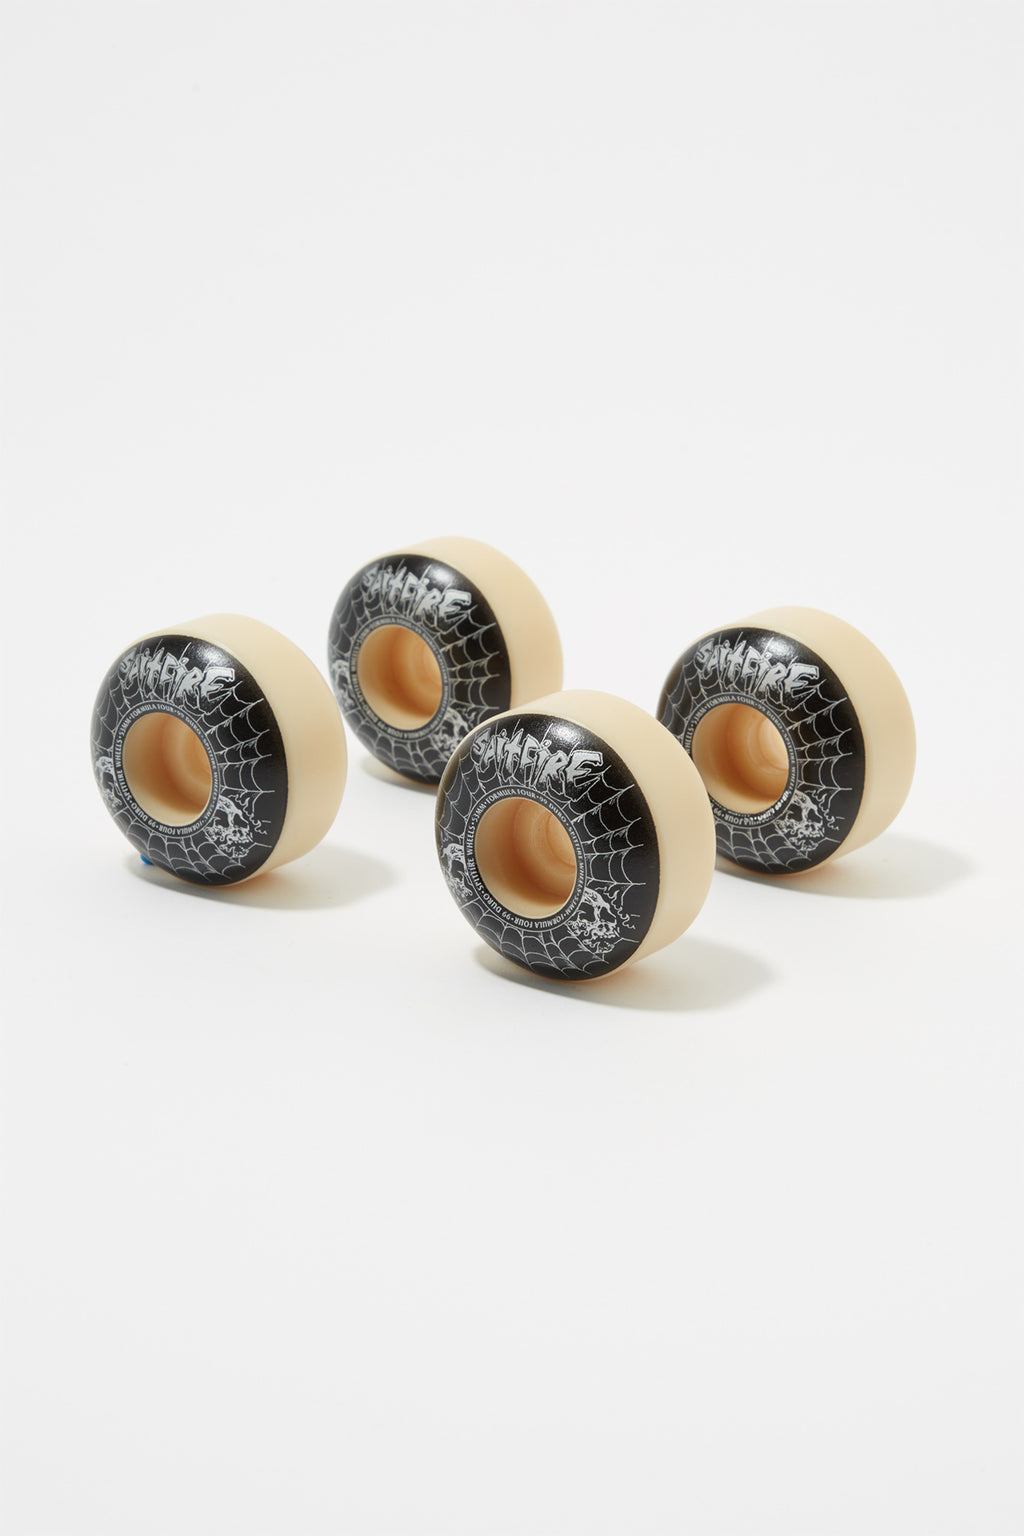 Spitfire x Lotties 53mm Skateboard Wheels